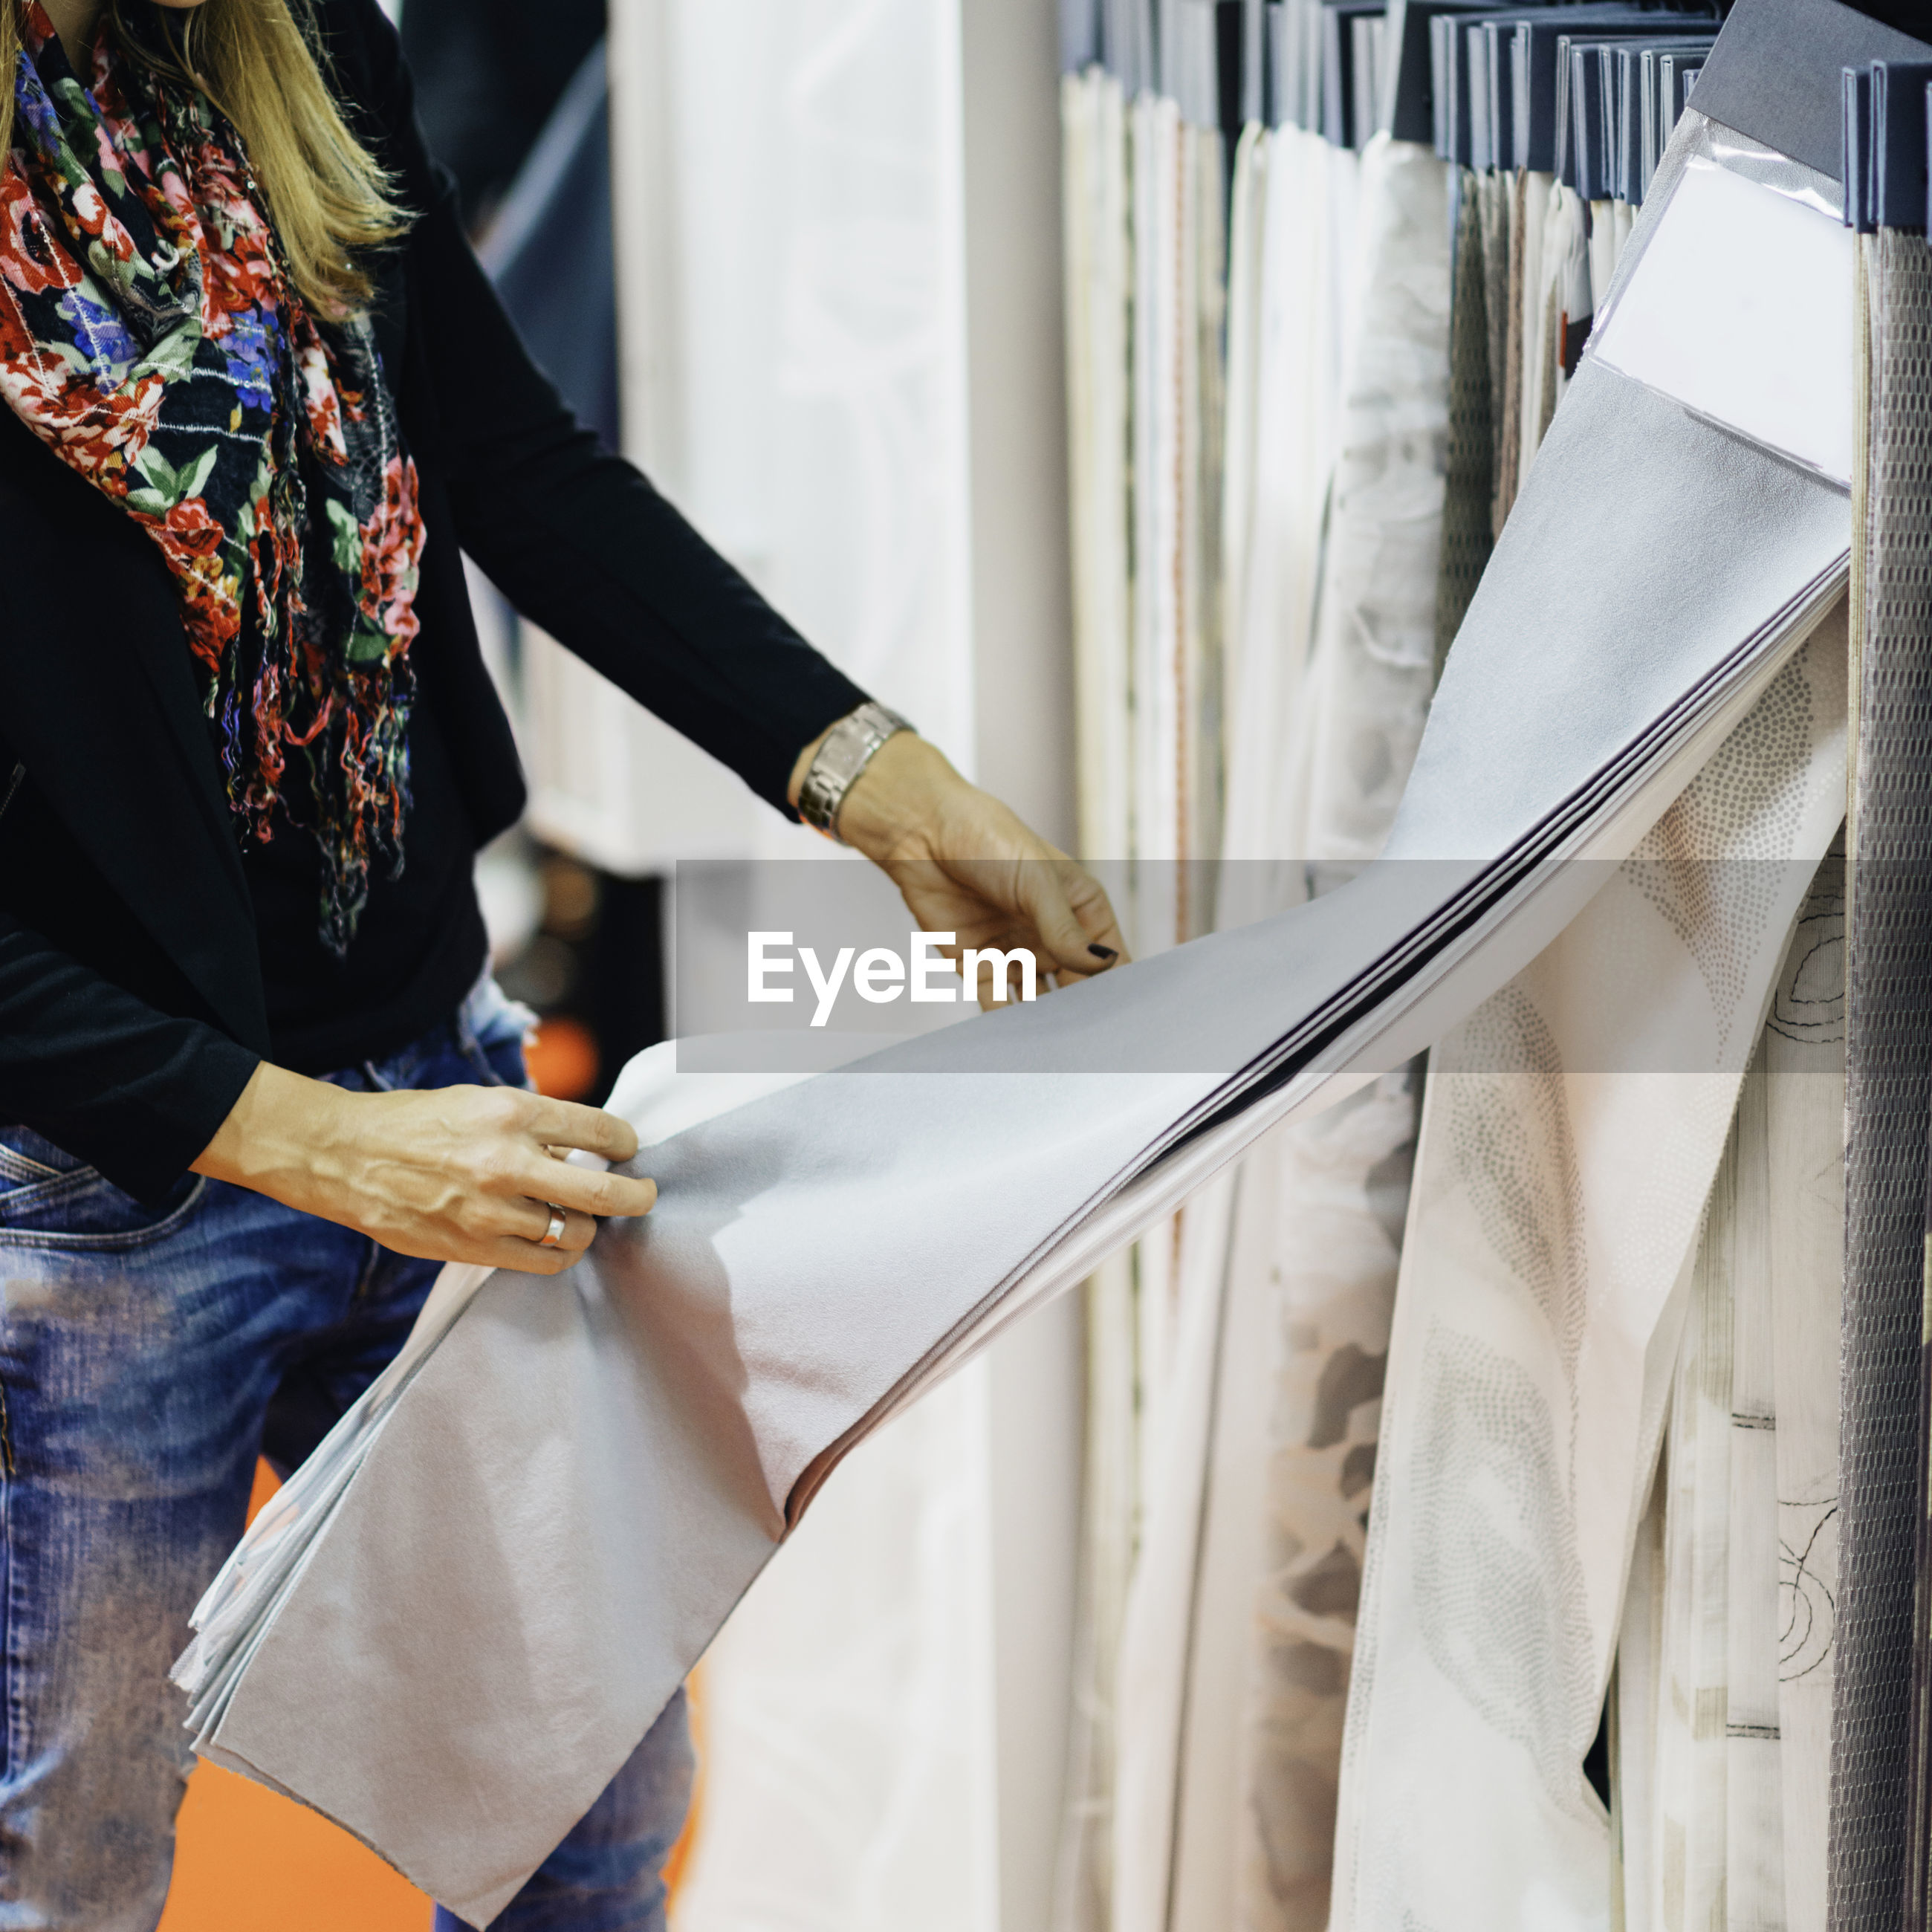 Midsection of woman holding fabric while standing in store